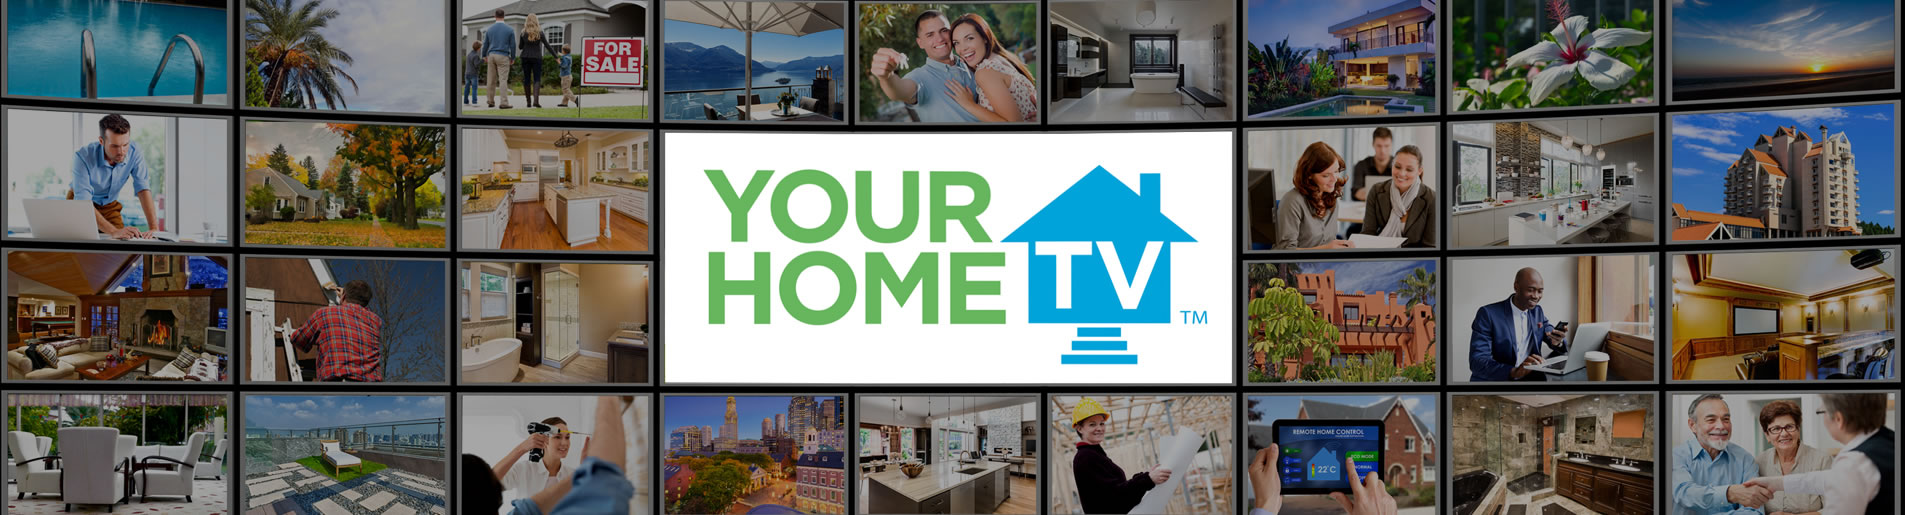 Your Home TV